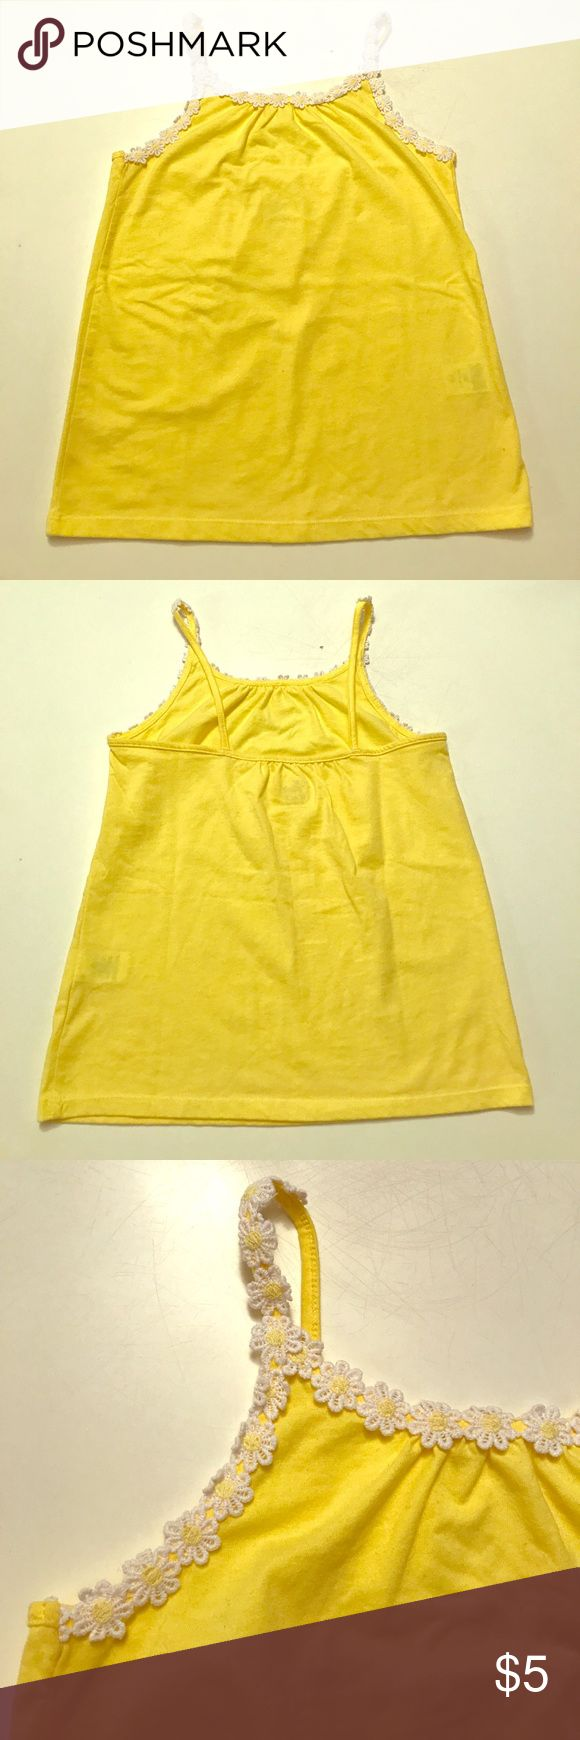 Girls yellow tank with daisy trim Girls yellow tank top with daisy trim on straps and front neckline. Size M 7/8 The Children's Place Shirts & Tops Tank Tops